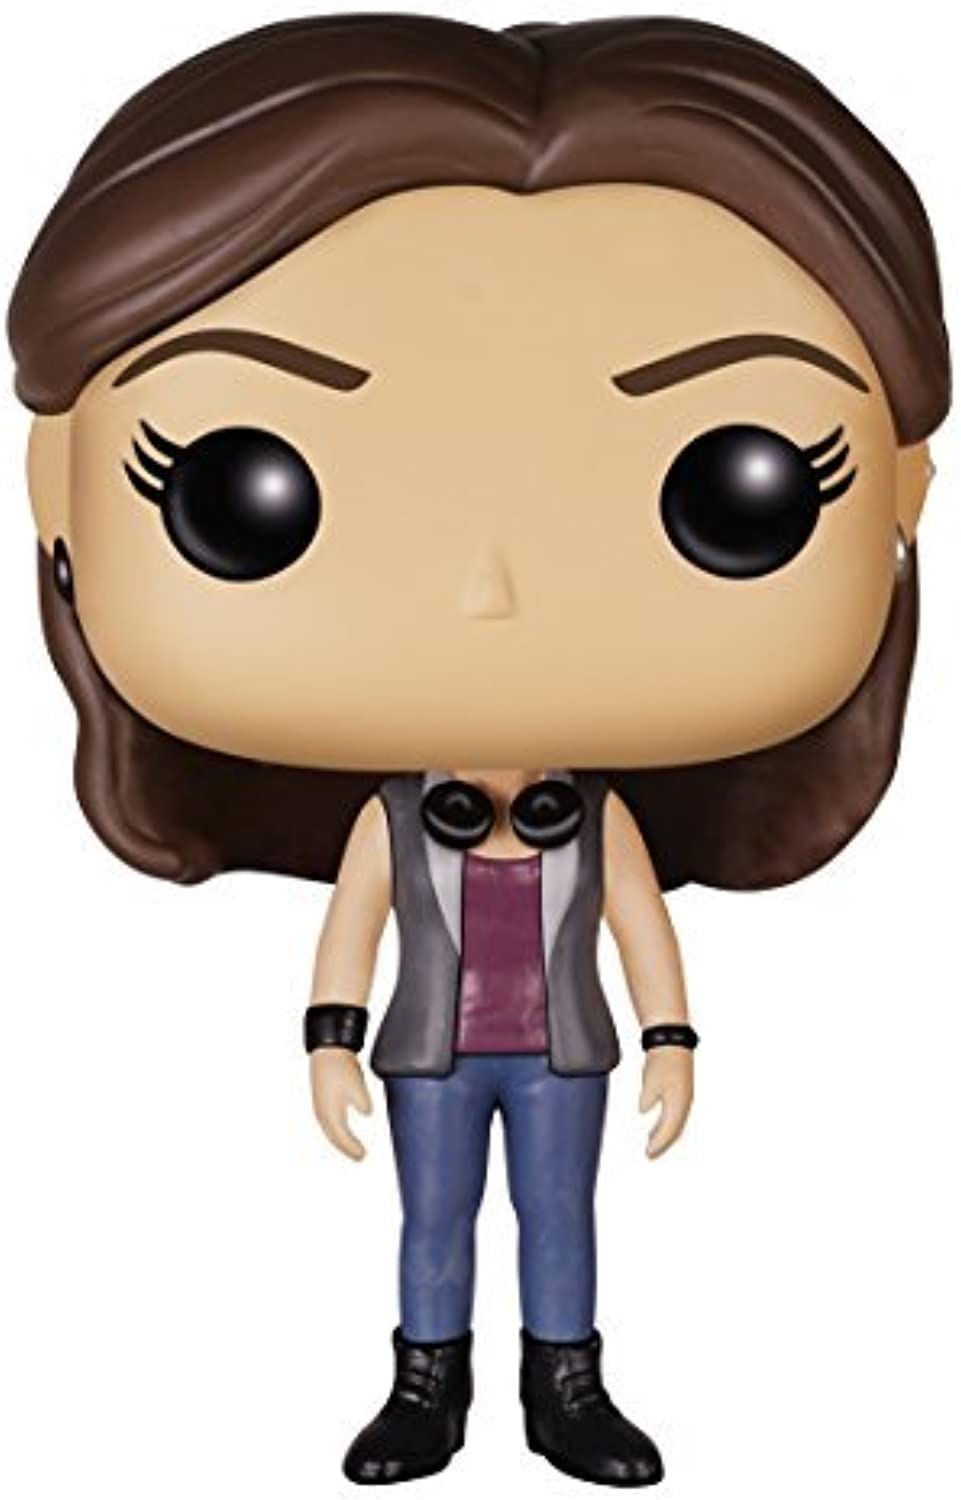 marca famosa Funko Funko Funko Pop Movies Pitch Beca Acción Figura by  60% de descuento